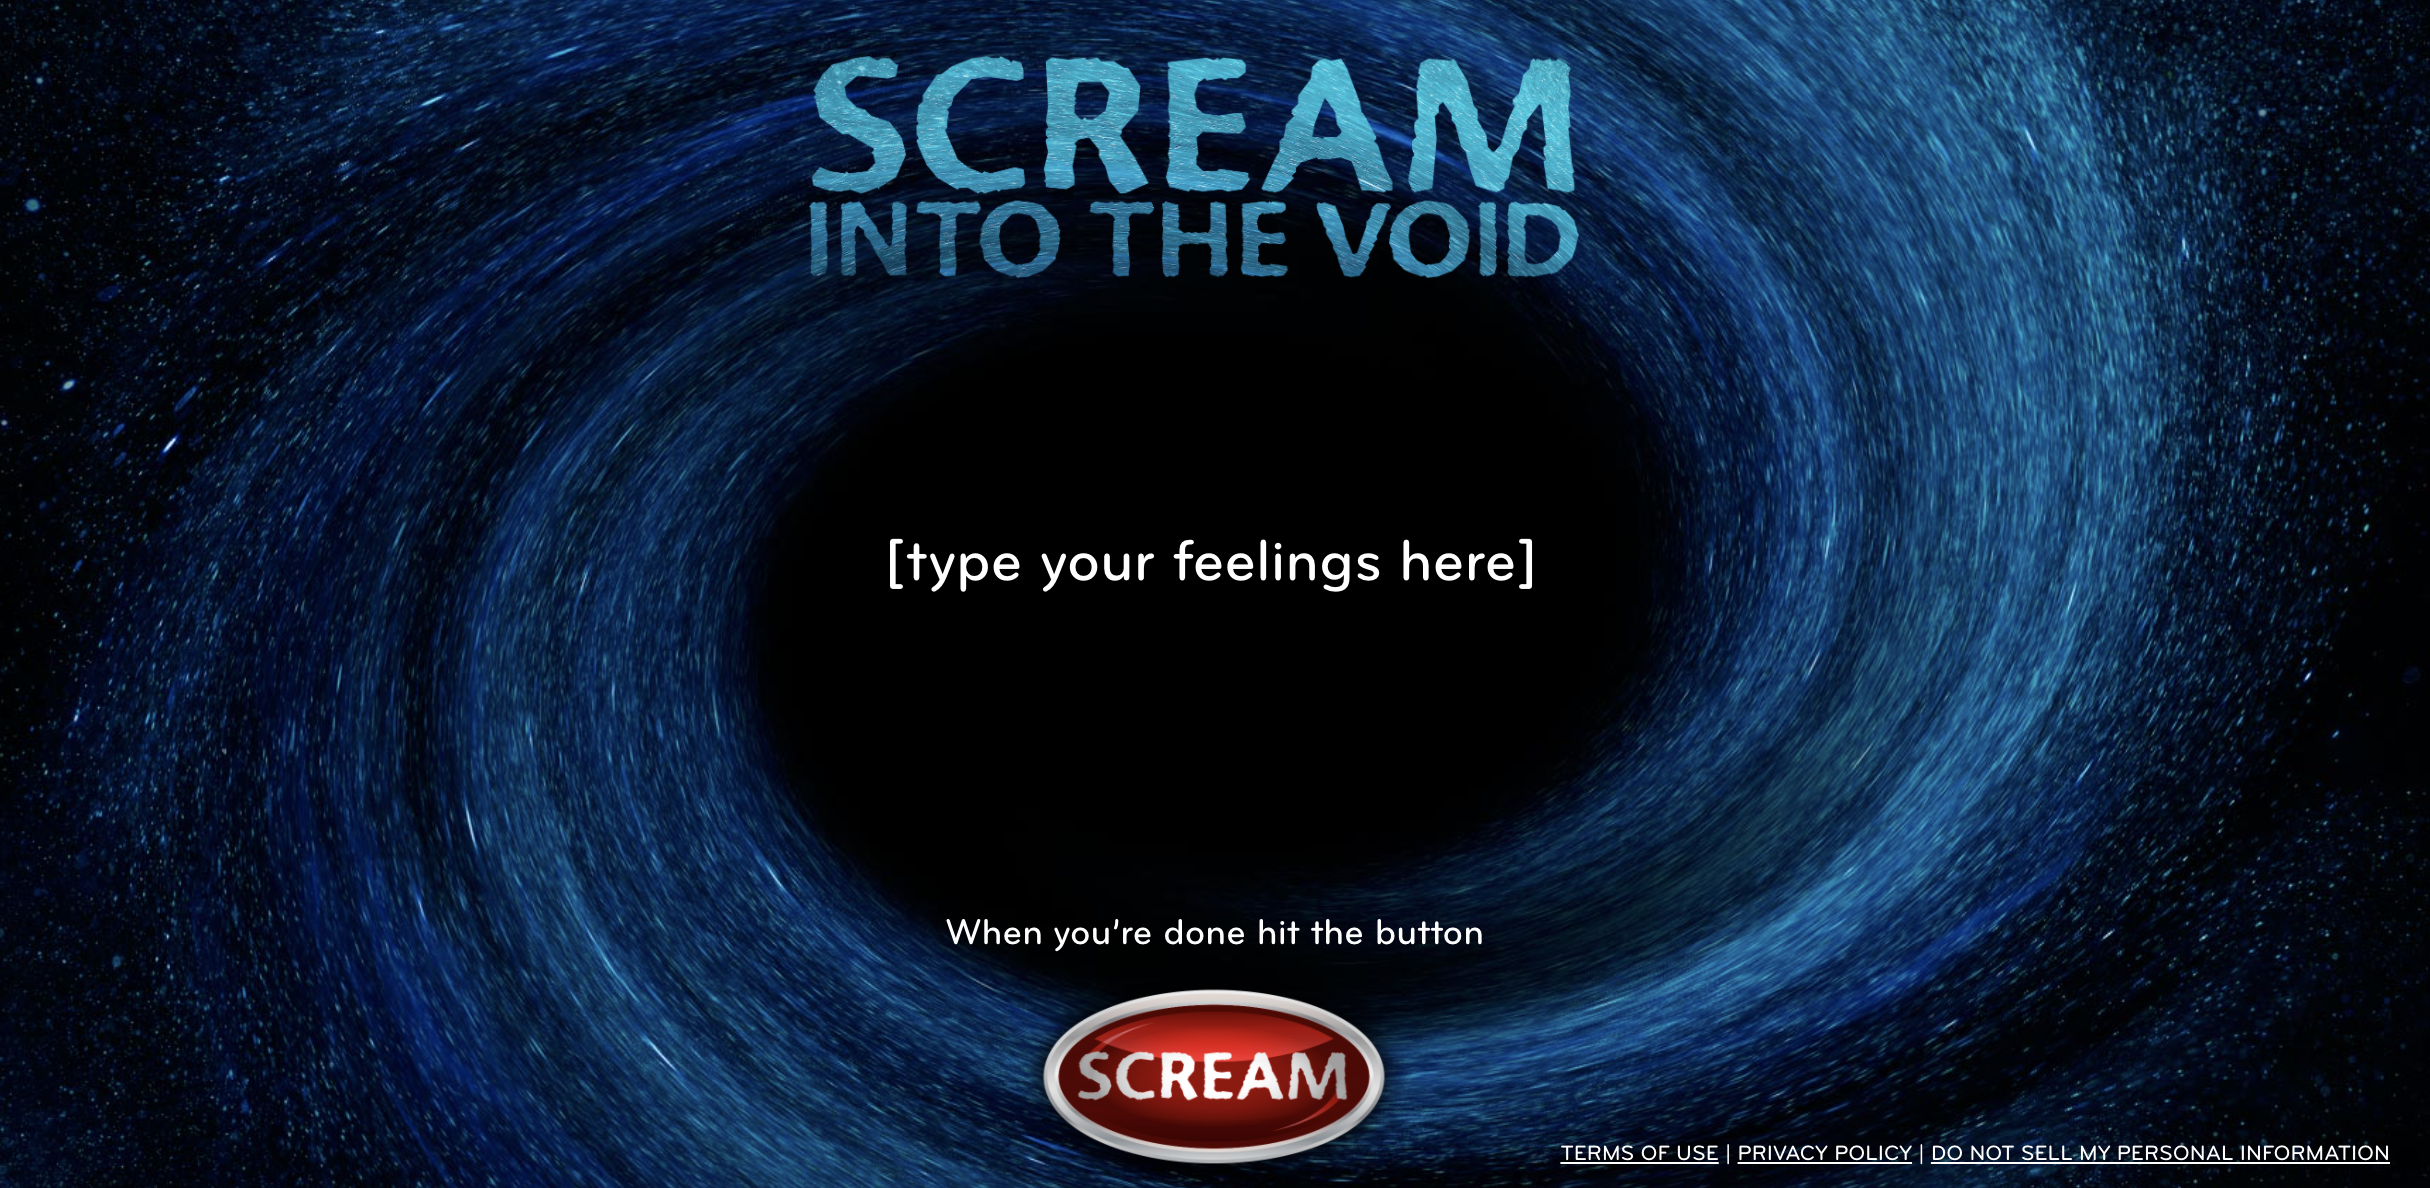 """dark void image with the title """"scream into the void"""" and a place to type your feelings then hit """"scream"""""""